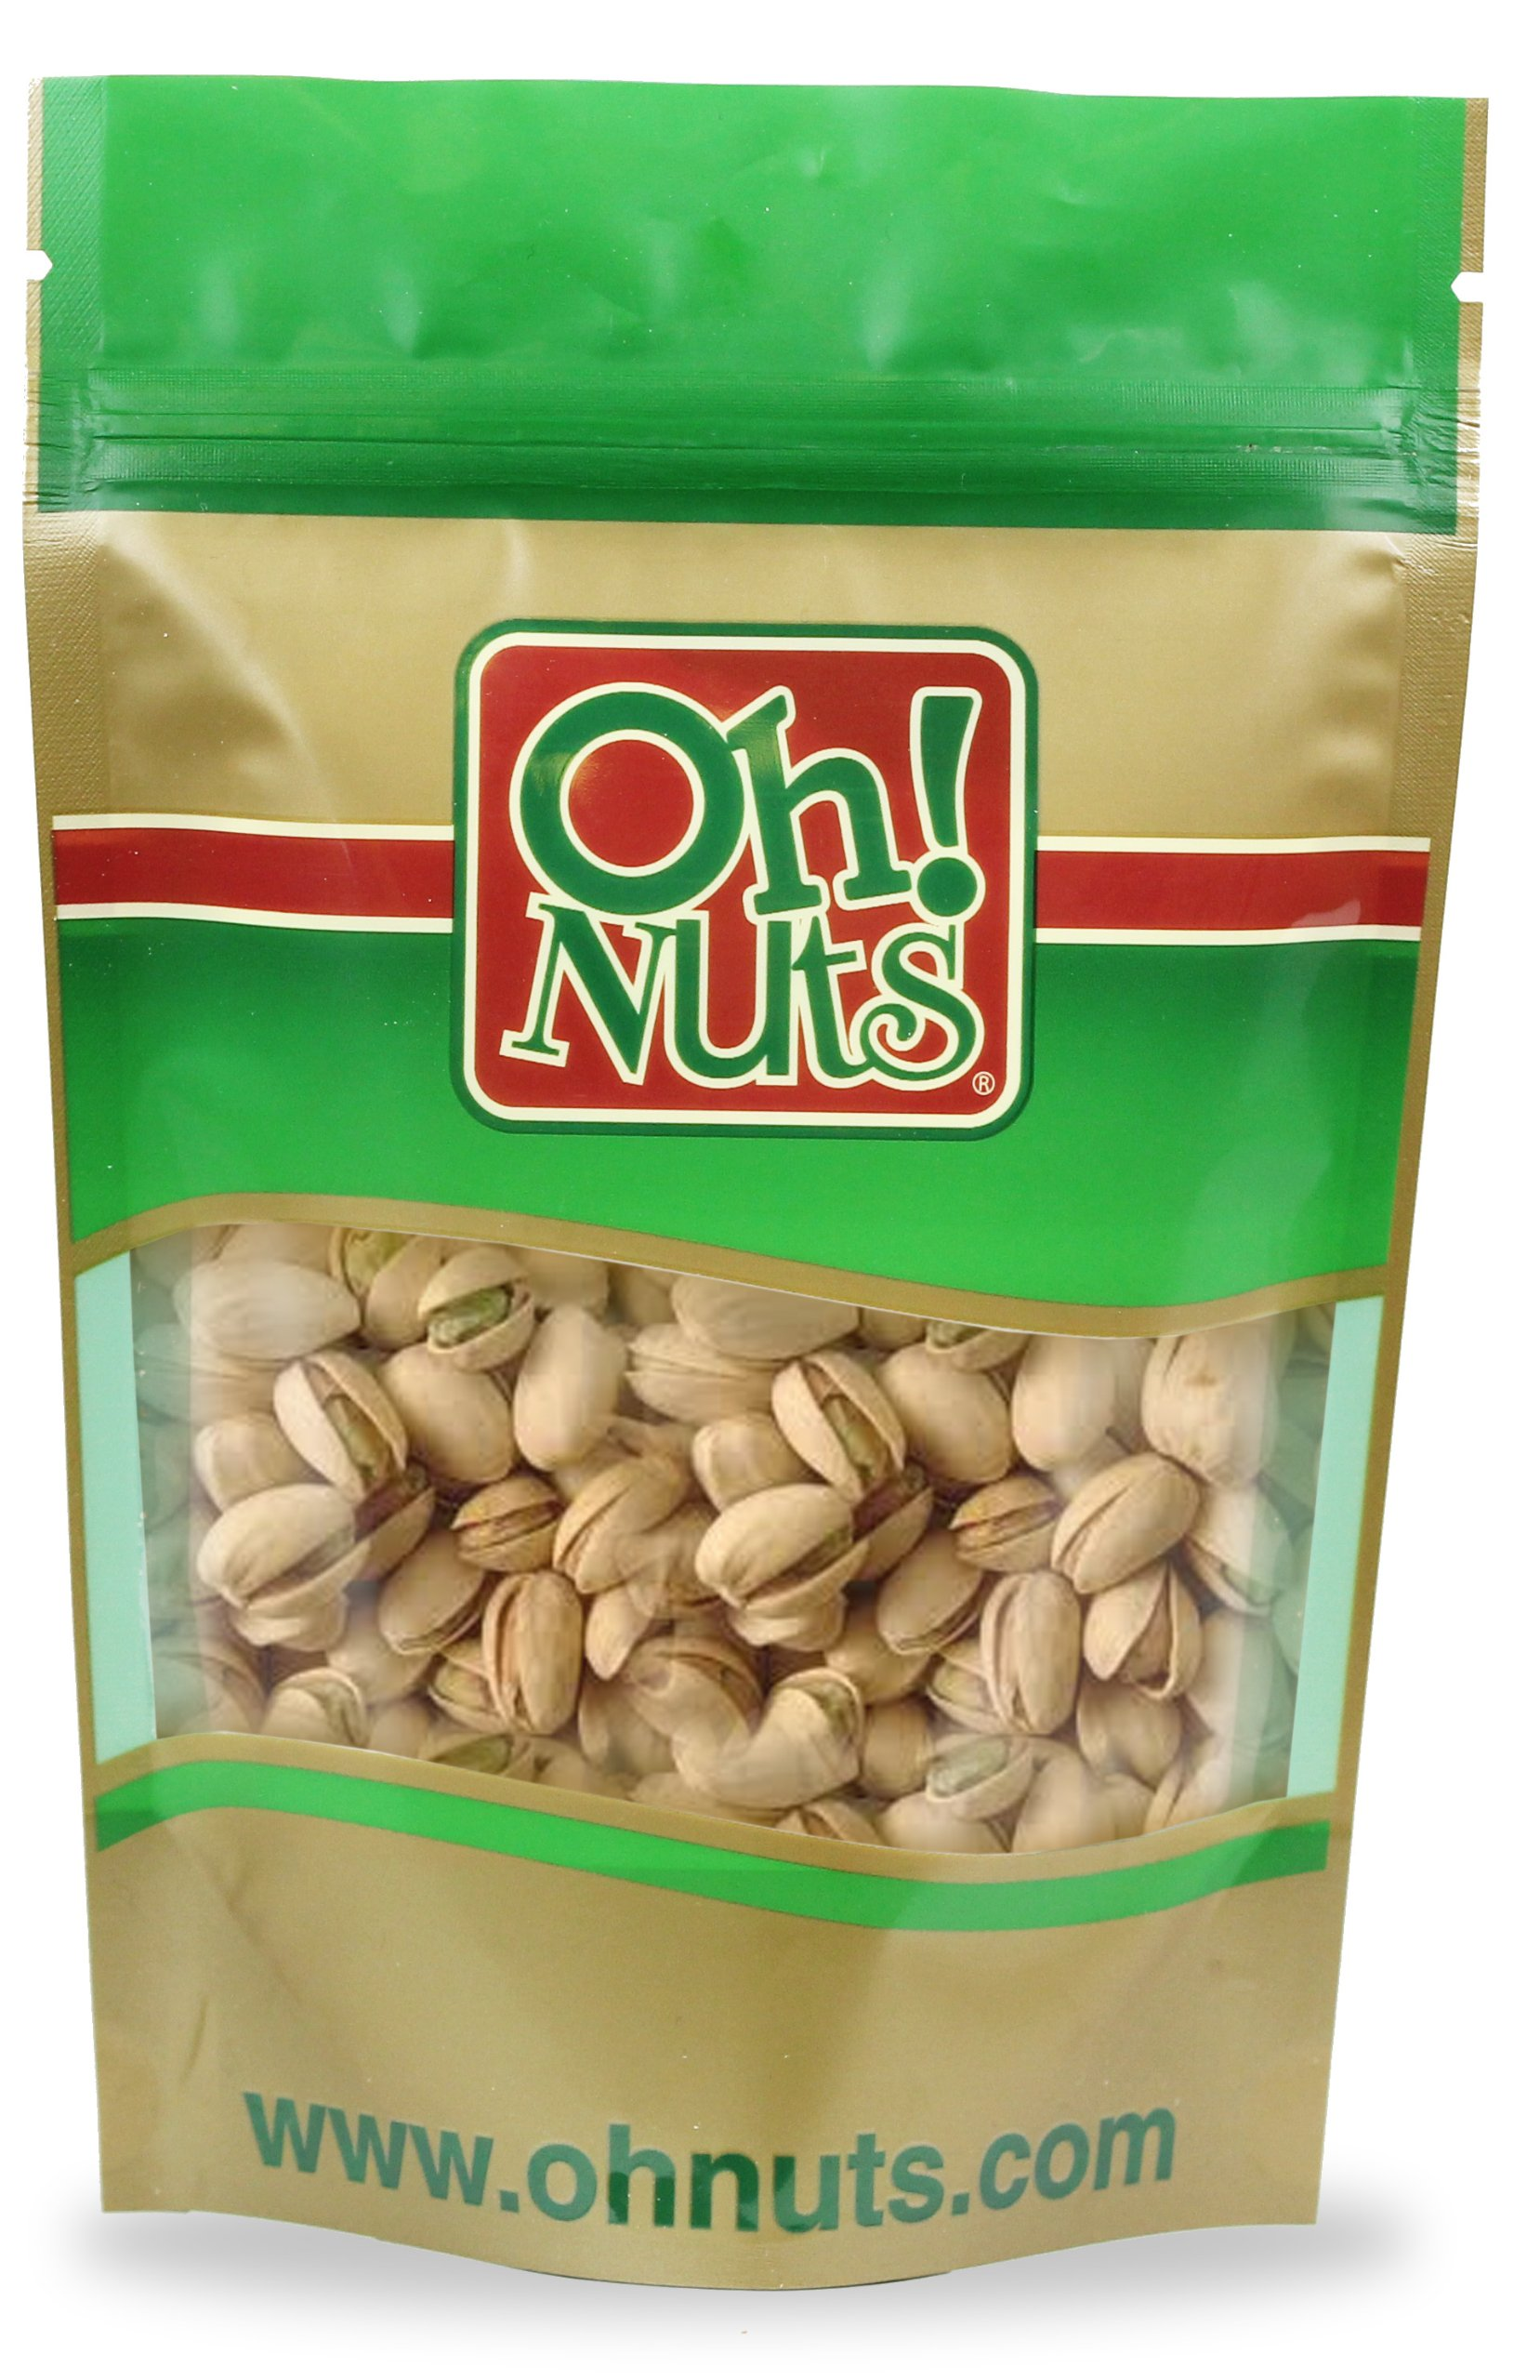 Roasted Pistachios Unsalted (5 Pound Bag) - Oh! Nuts